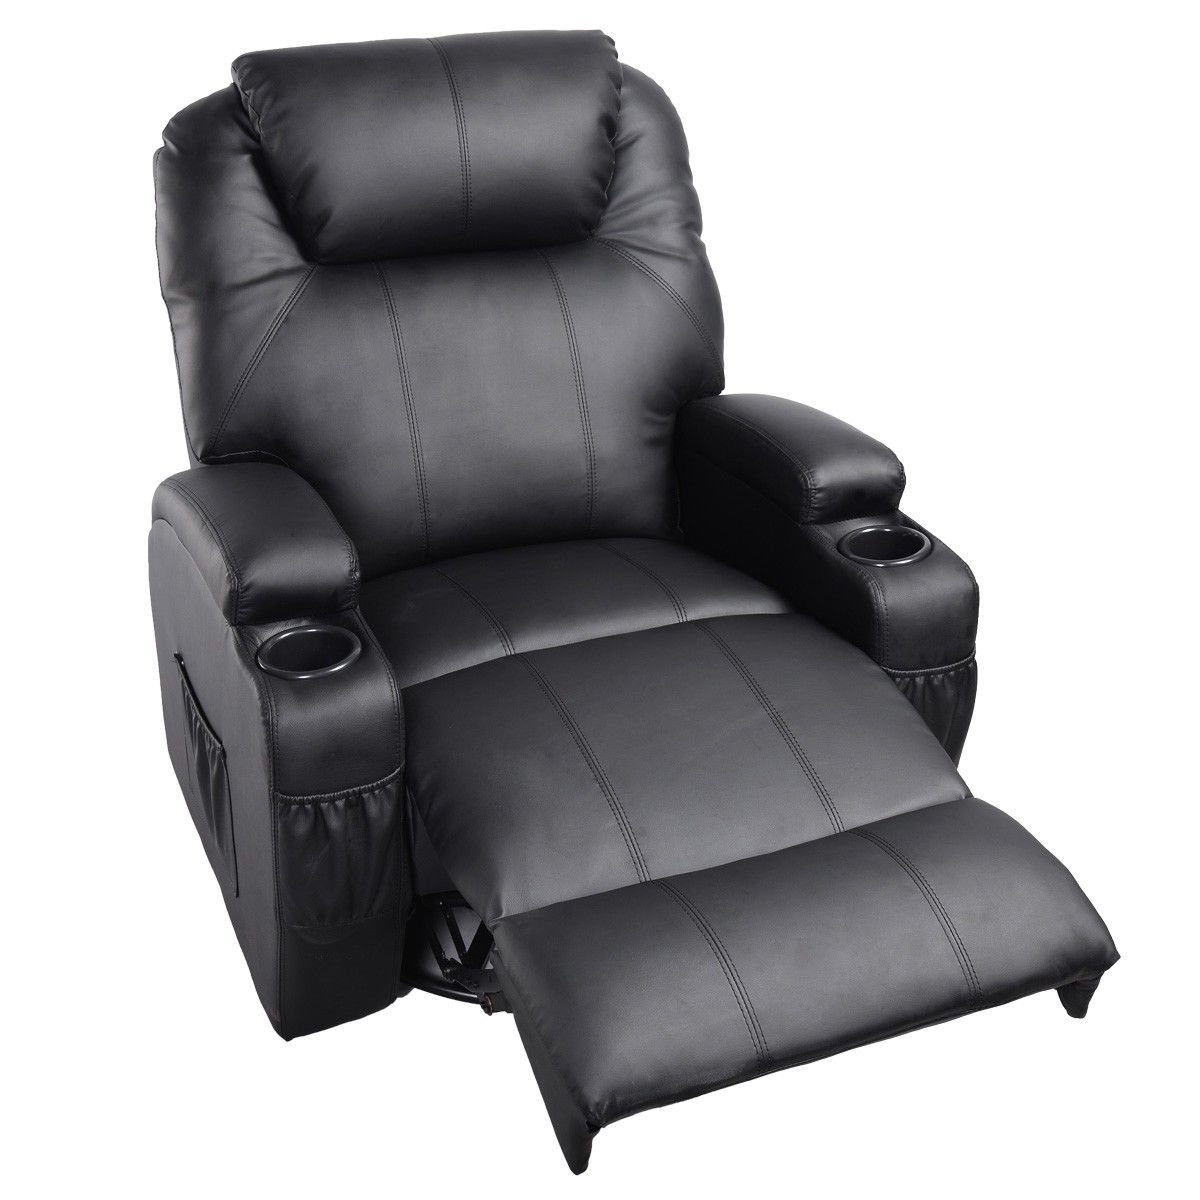 Latest Amazon: Ghp Black Sturdy Ergonomic Seating Massage Recliner Within Ergonomic Sofas And Chairs (View 10 of 15)